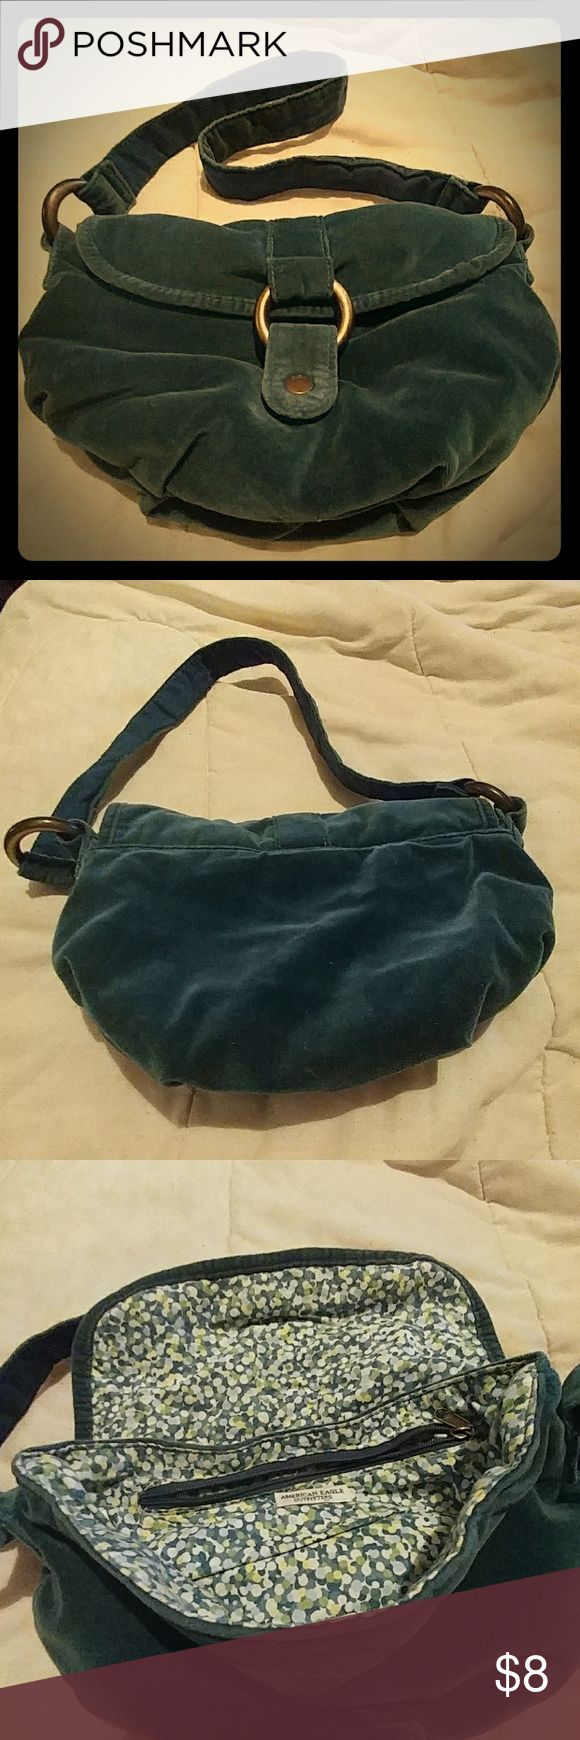 American Eagle Outfitters Purse Dark green suede purse American Eagle Outfitters Bags Shoulder Bags